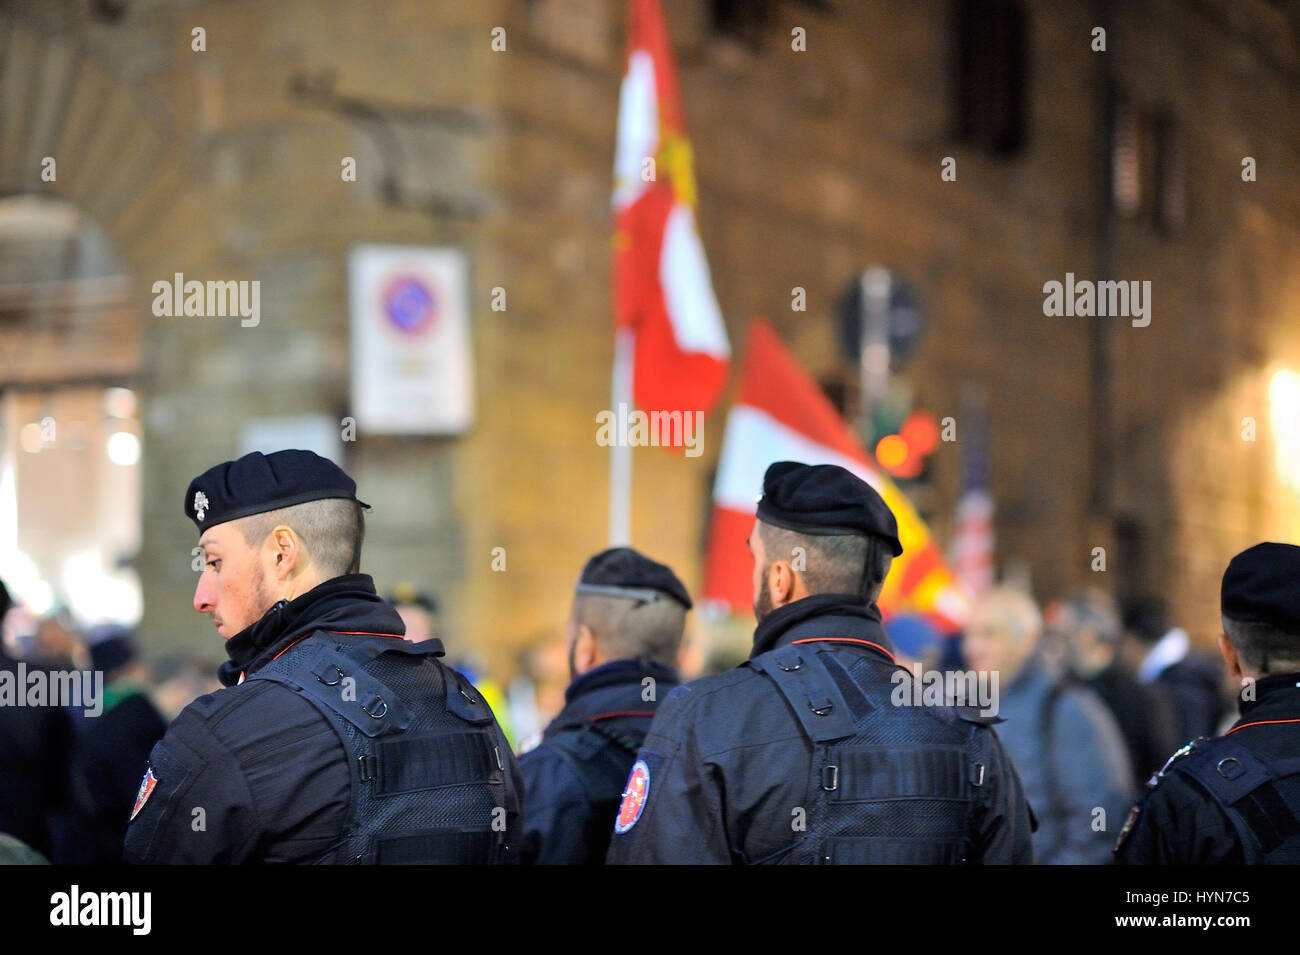 People manifesting against the increasing number of migrants and reduce jobs, in center of Florence, Italy, in novembe - Stock Image